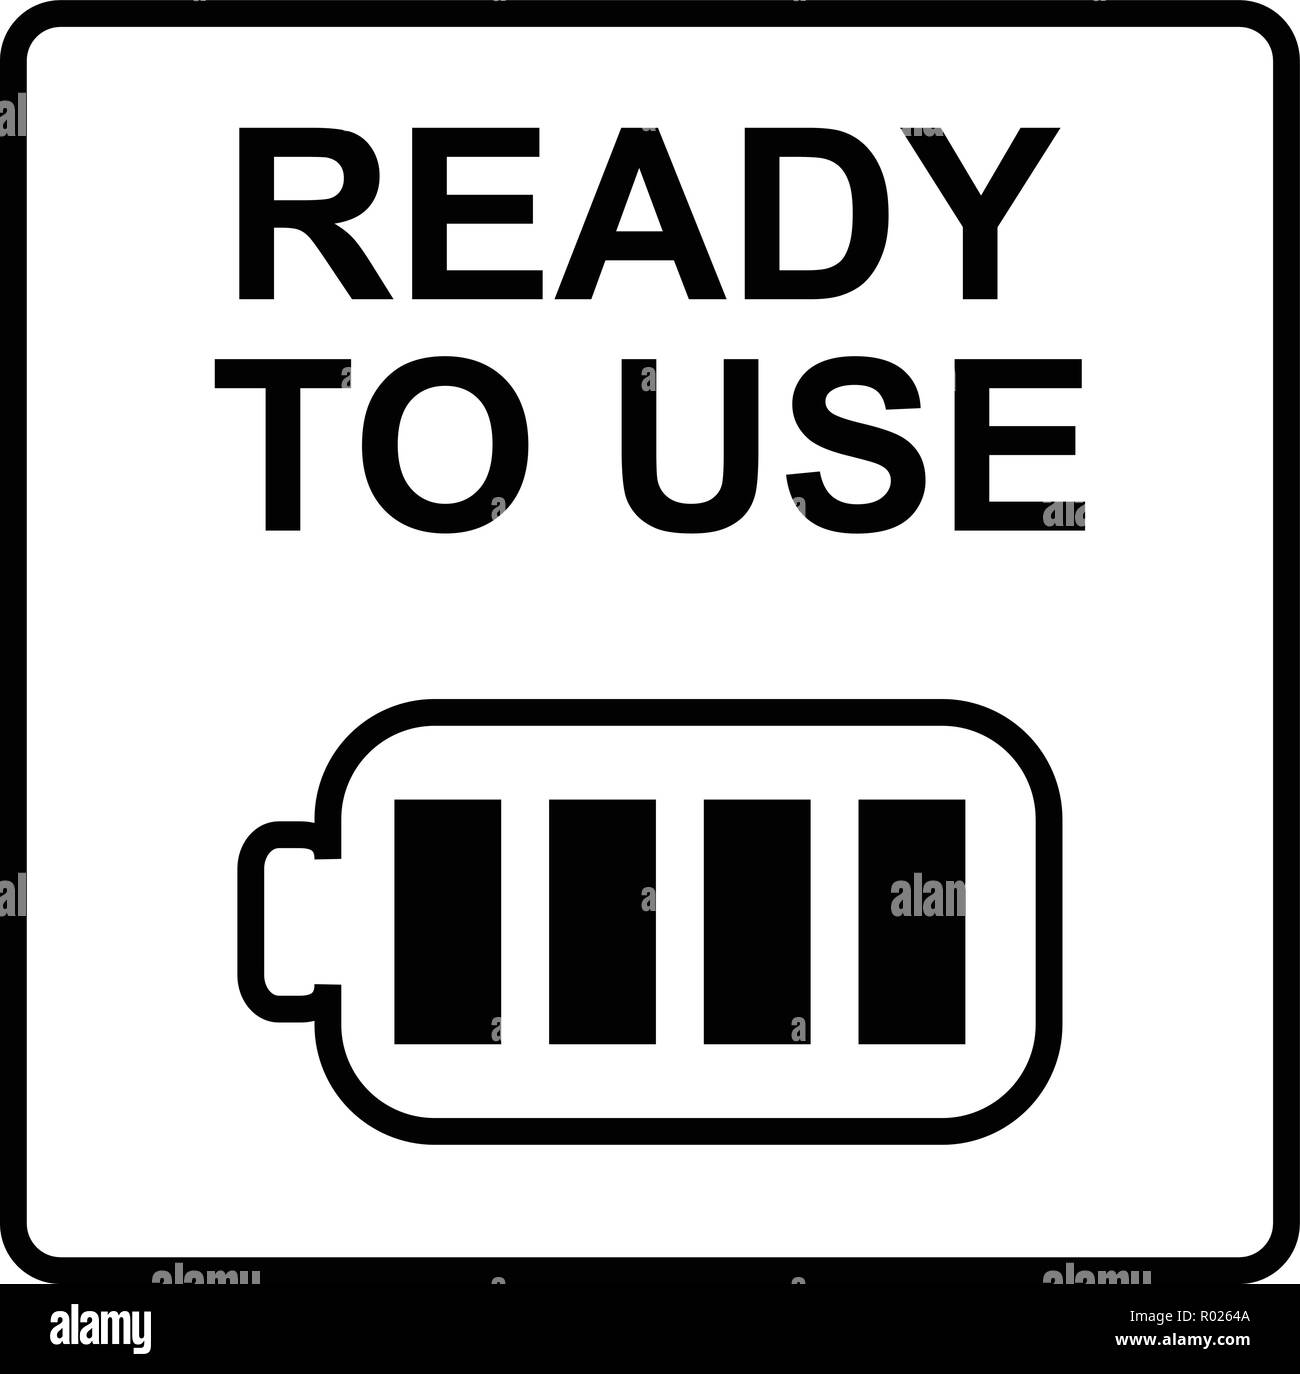 Fully charged battery with ready to use text - Stock Vector